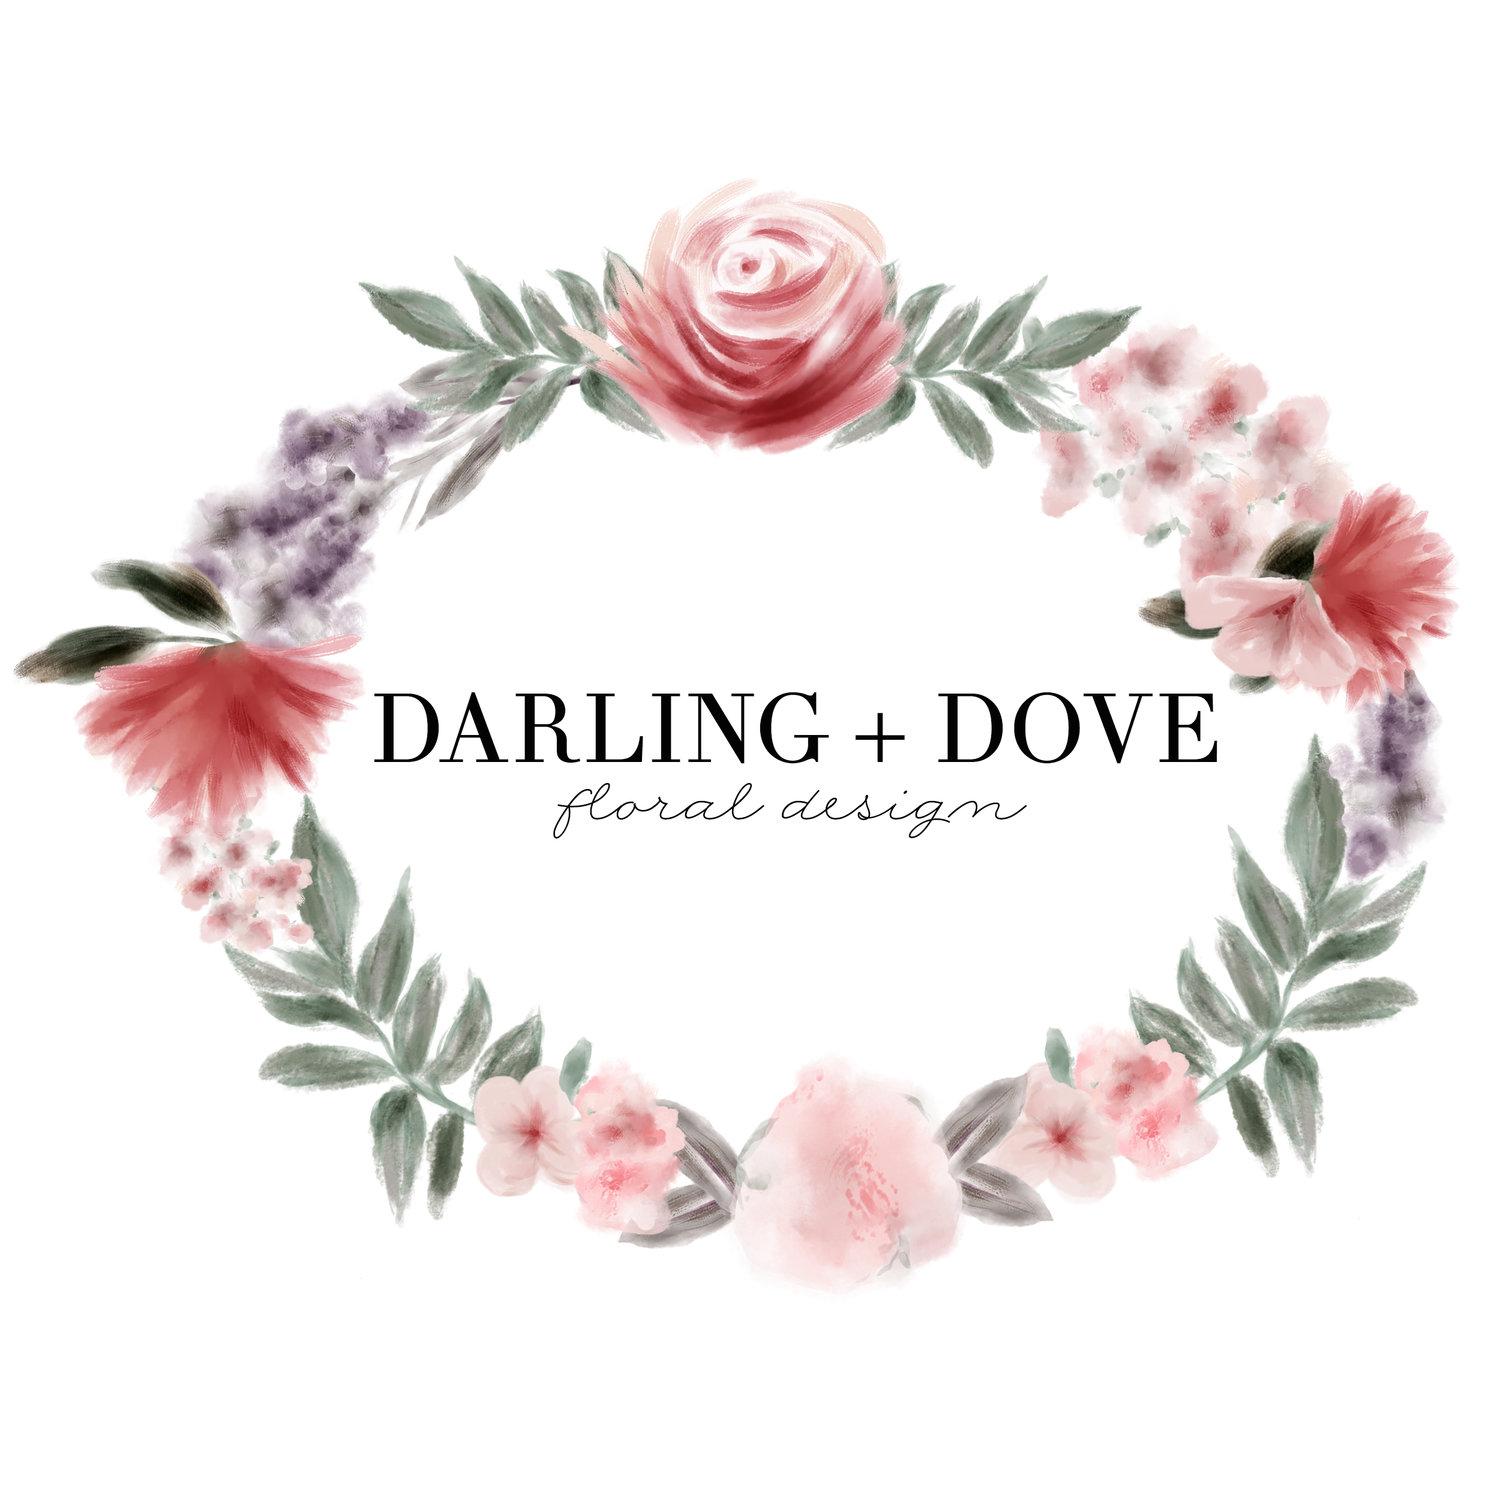 Darling + Dove